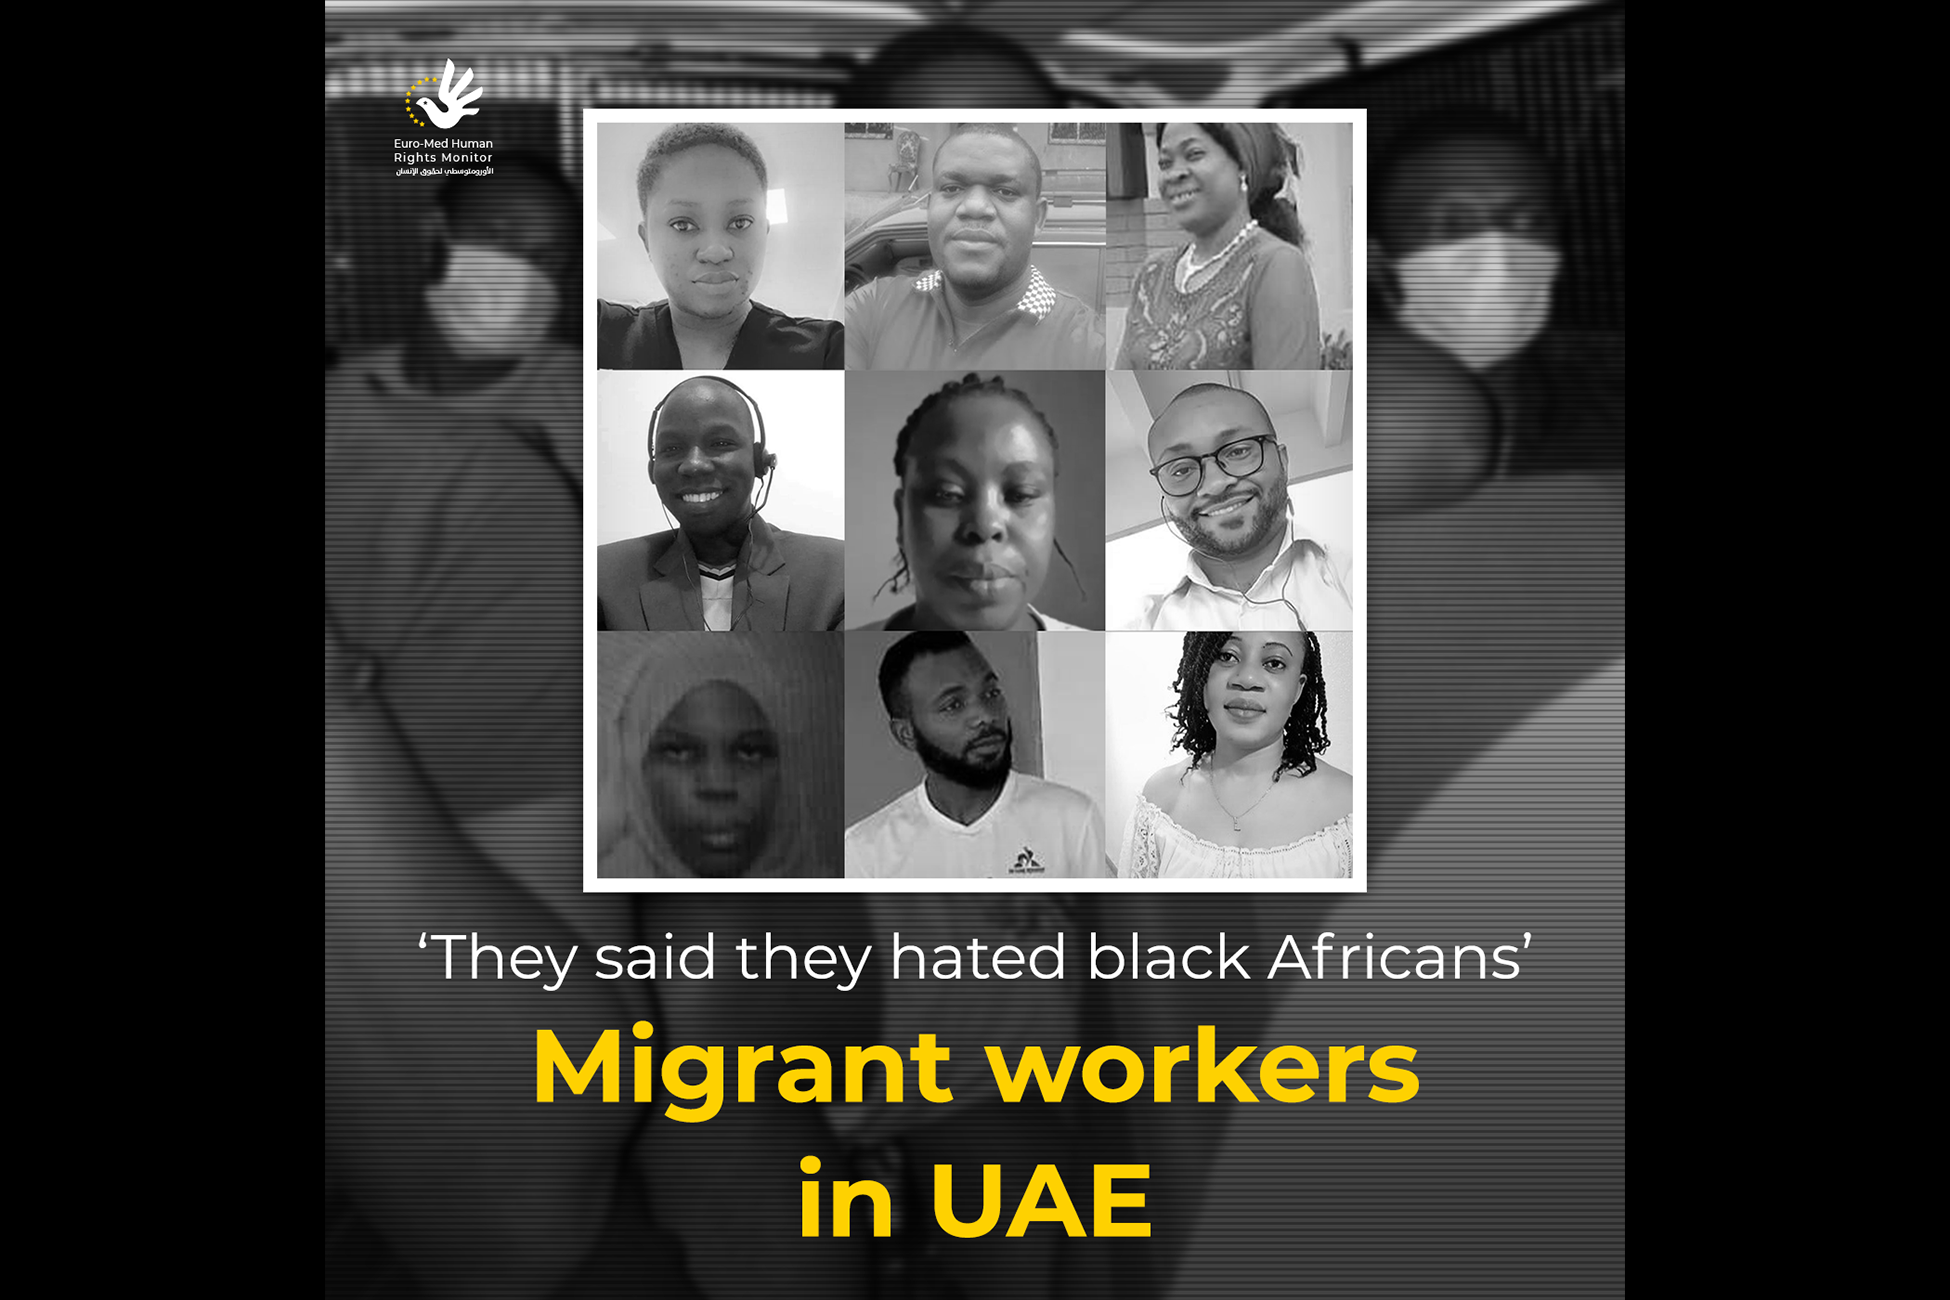 'They said they hated black Africans' Migrant workers in UAE